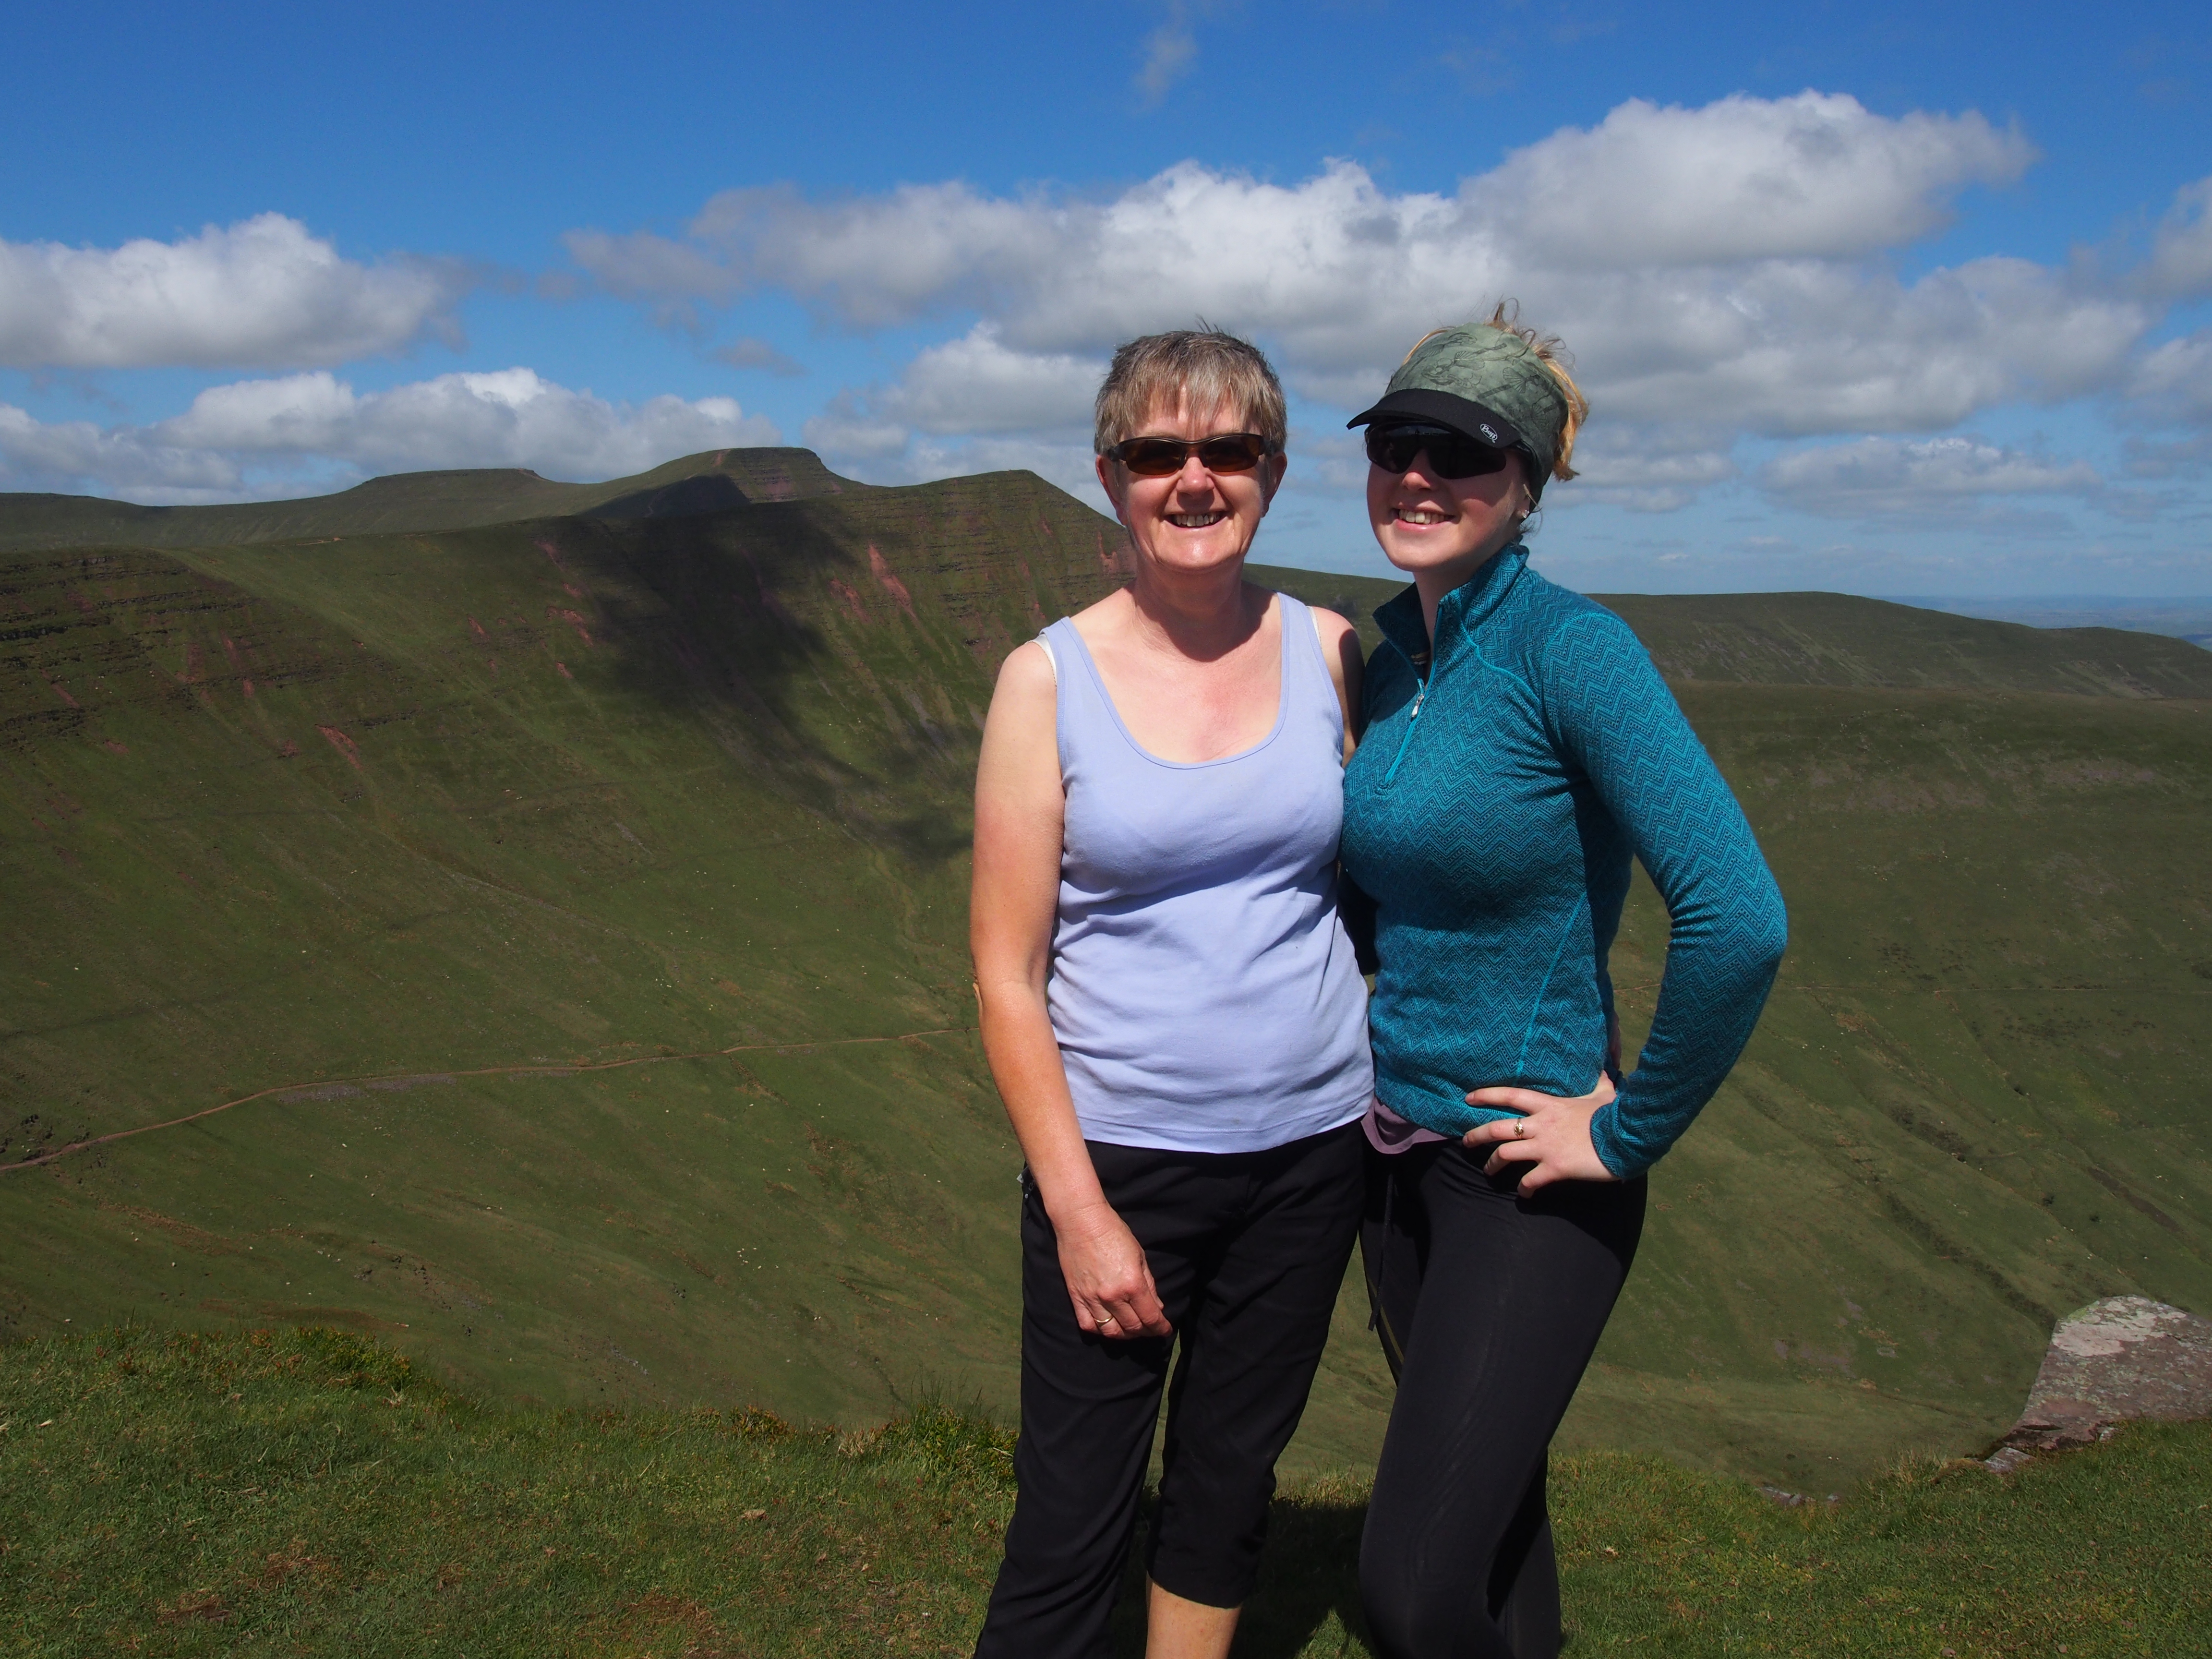 On Fan Y Big with Corn Du, Pen Y Fan and Cribyn in the background